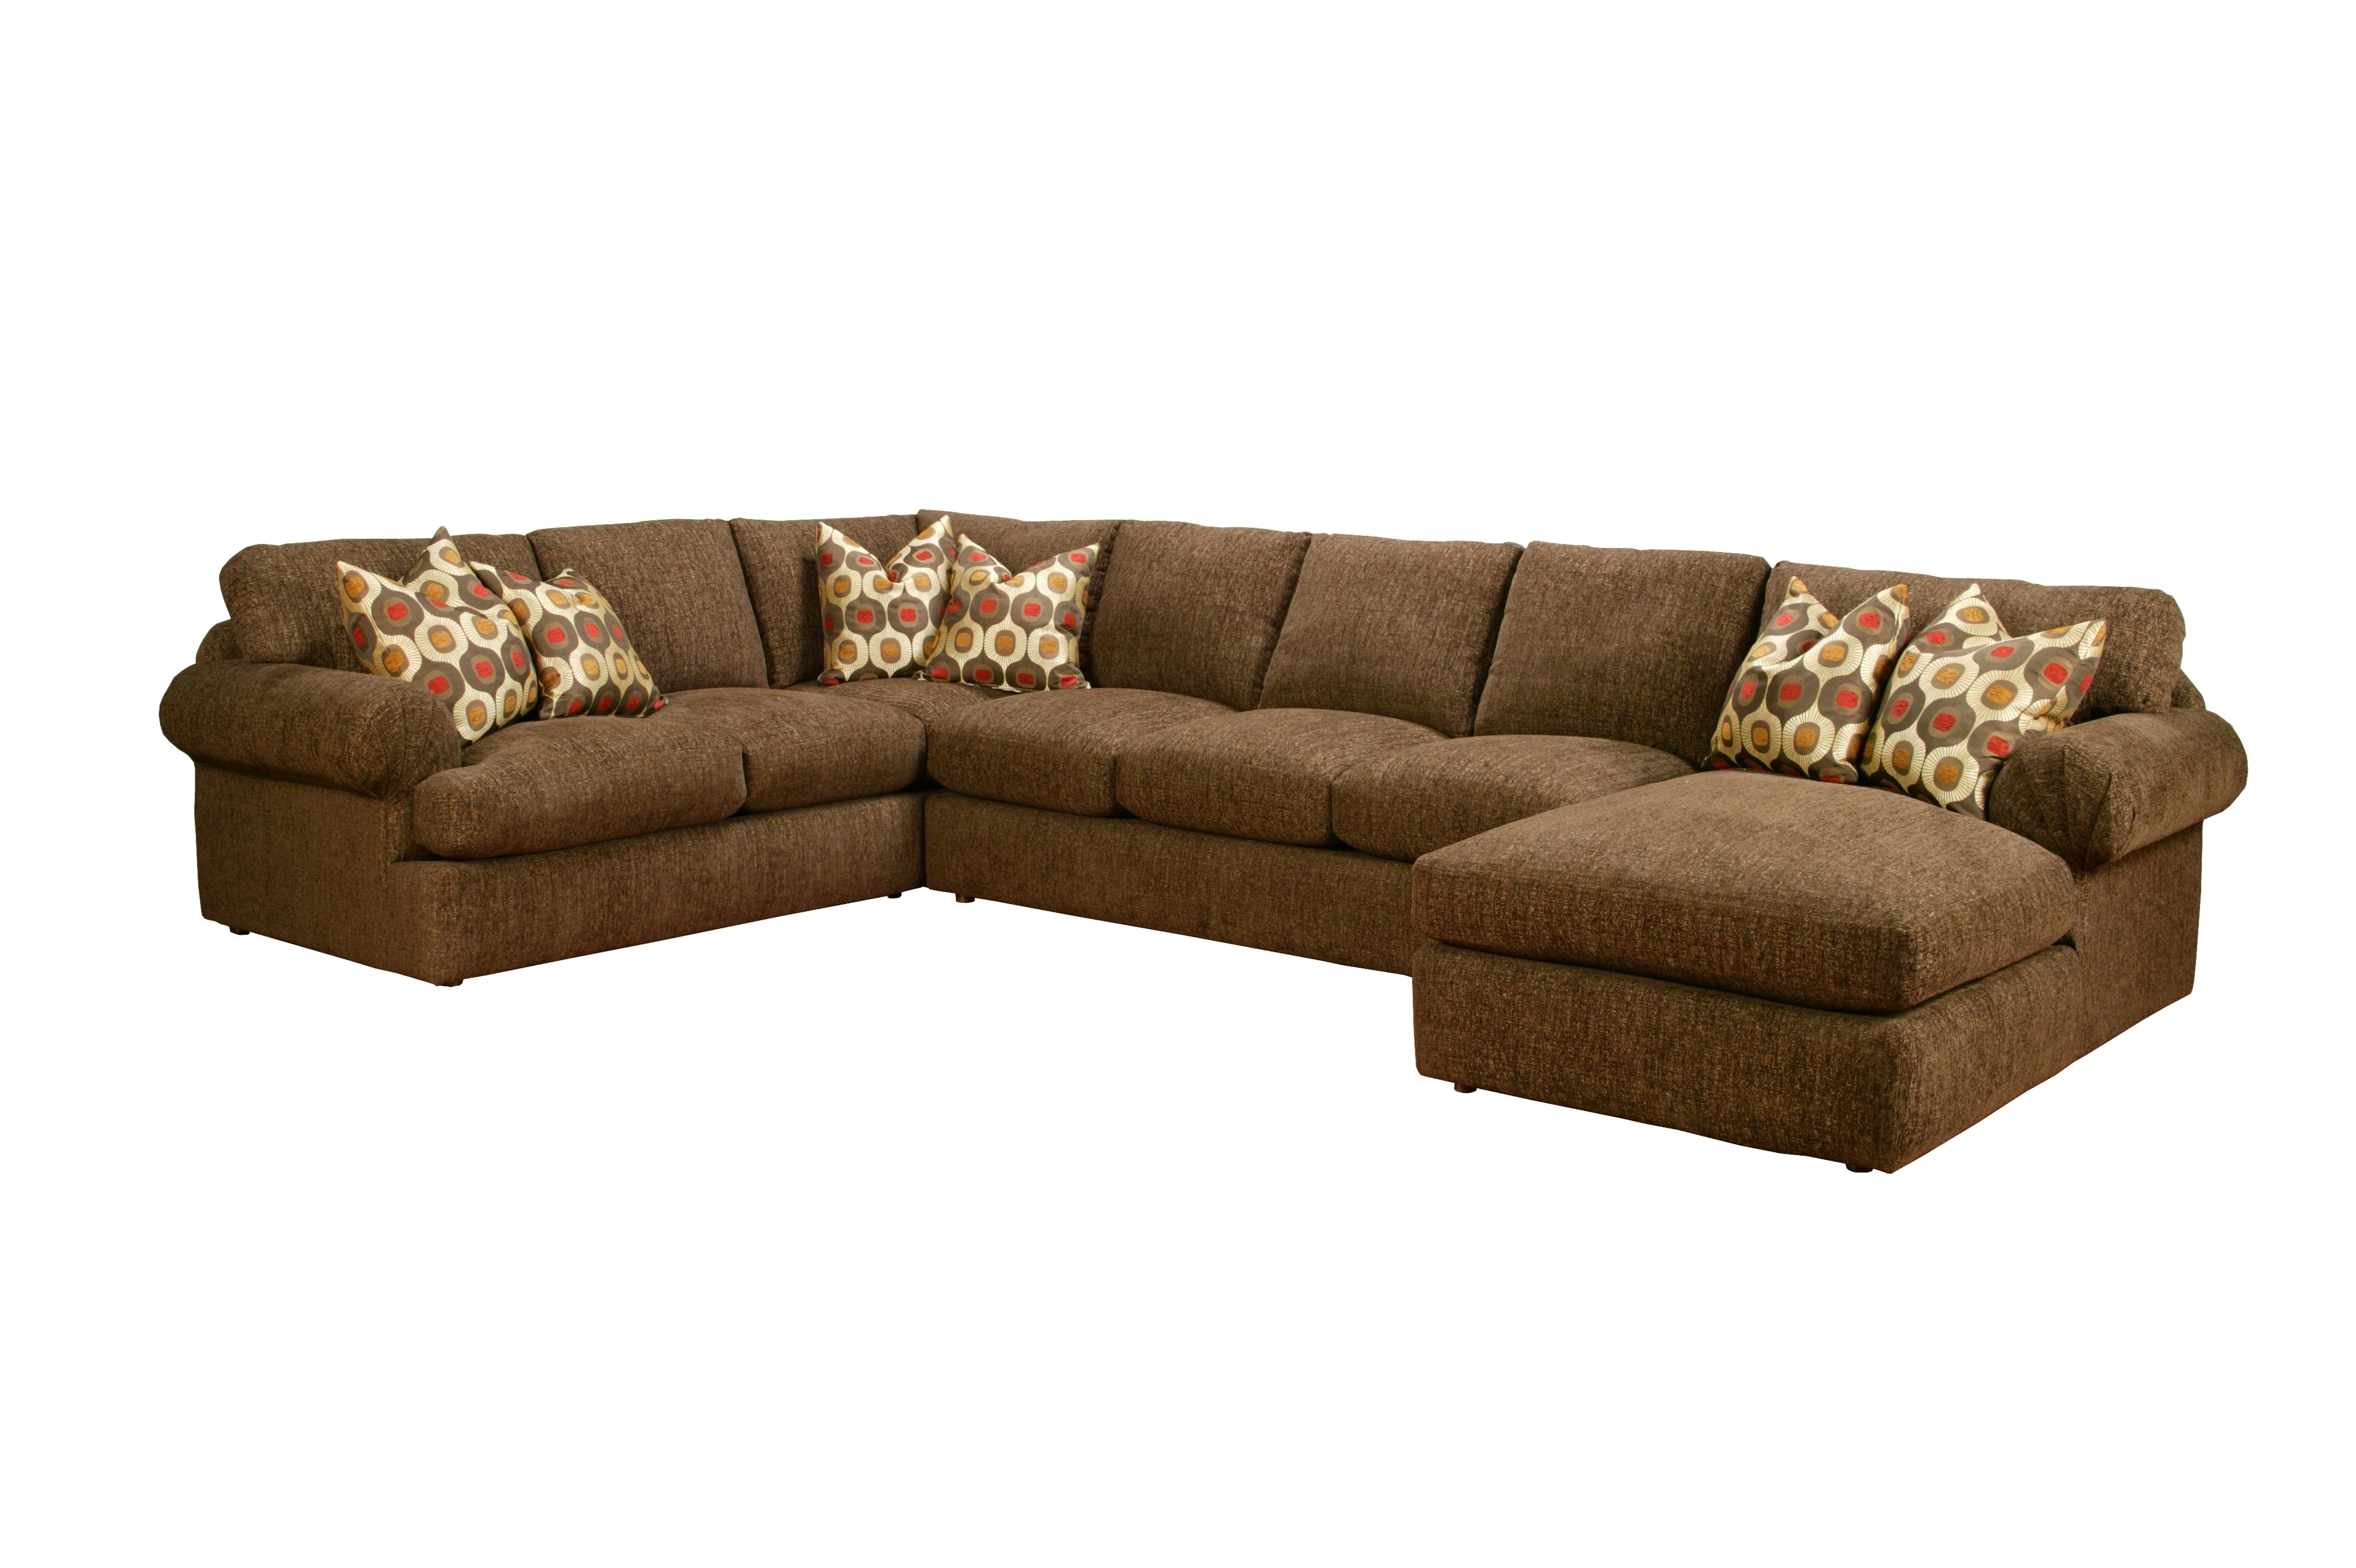 Robert Michael Fifth Ave Sofa Sectionals Phoenix Arizona In Well Known Phoenix Sectional Sofas (View 13 of 15)